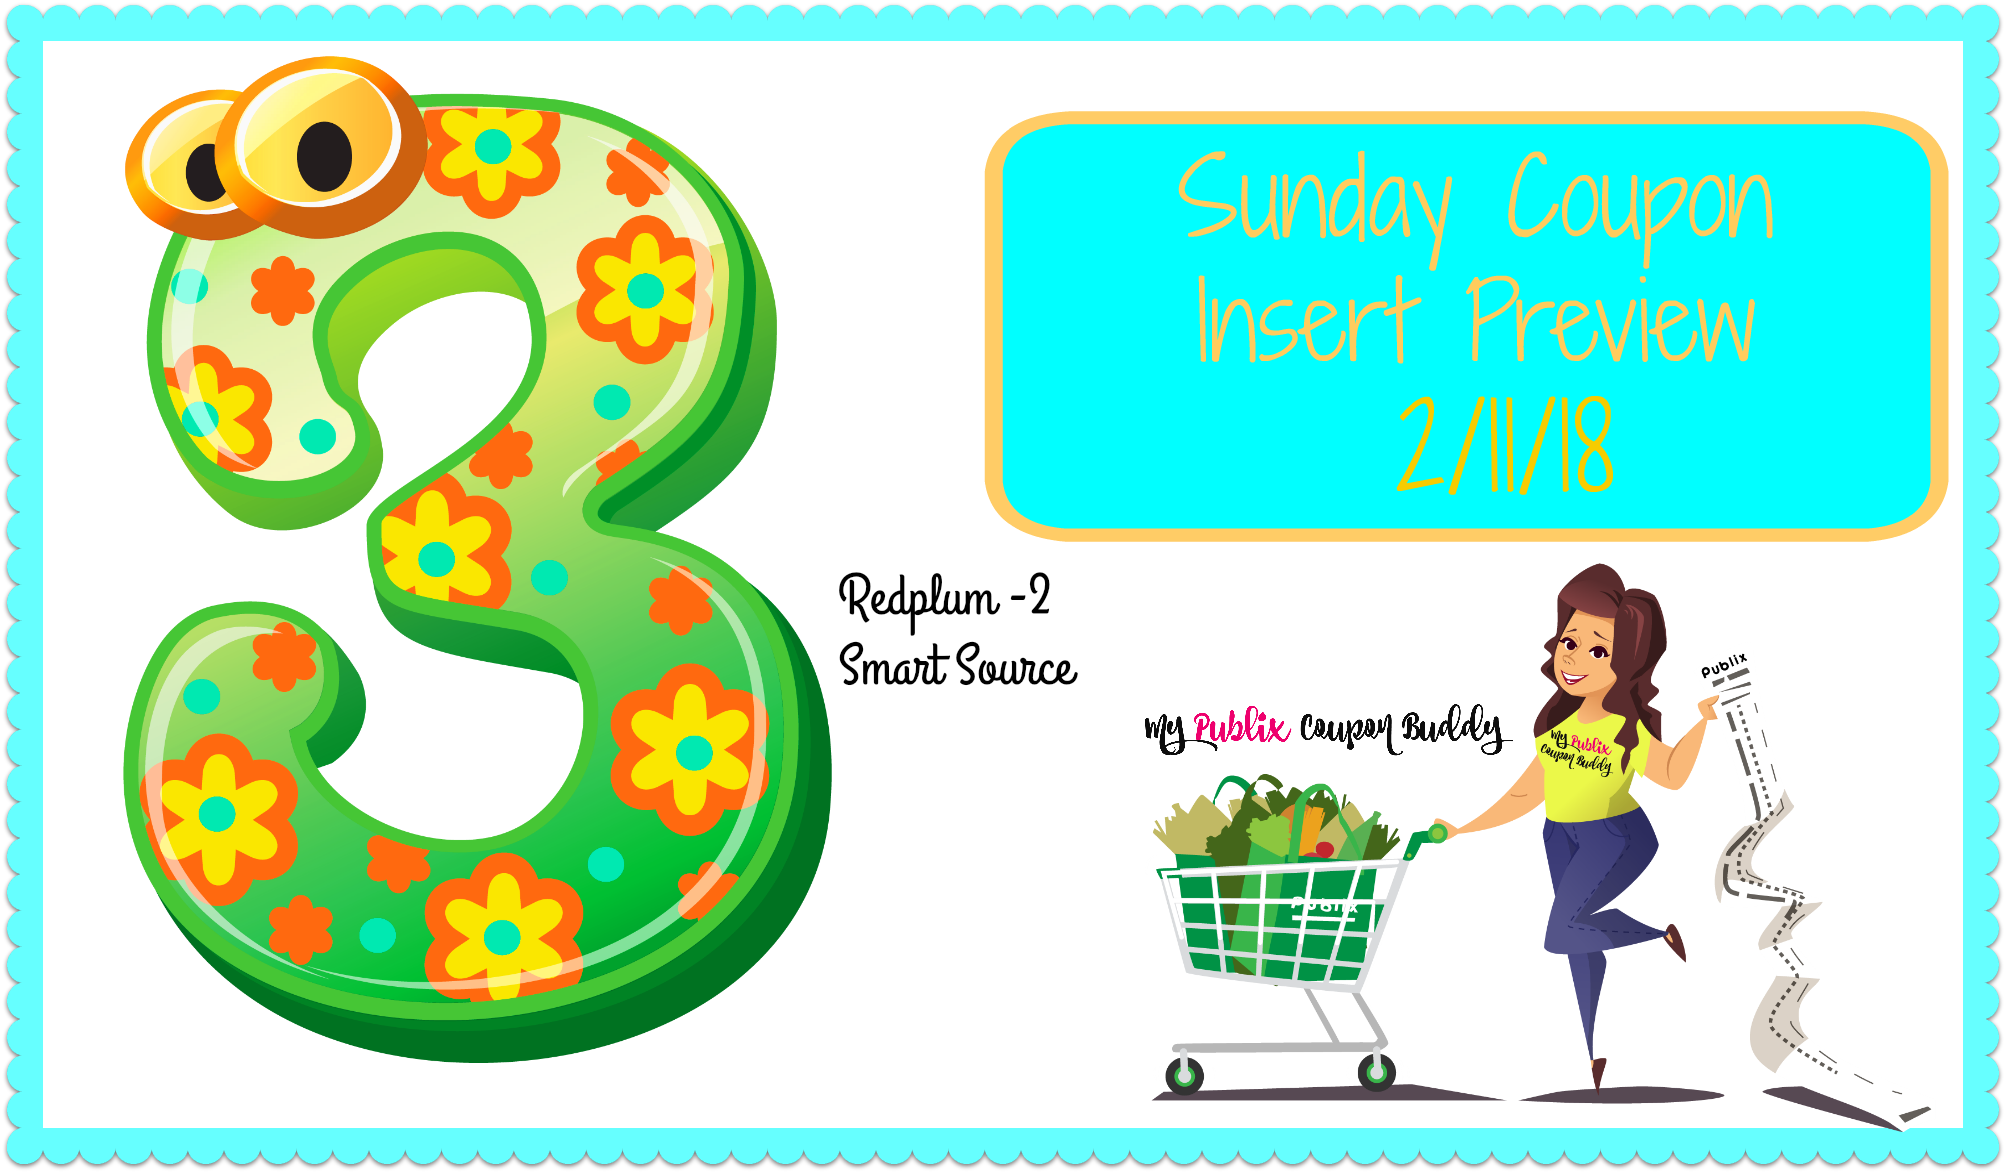 Sunday Coupon Insert Preview 2 11 18